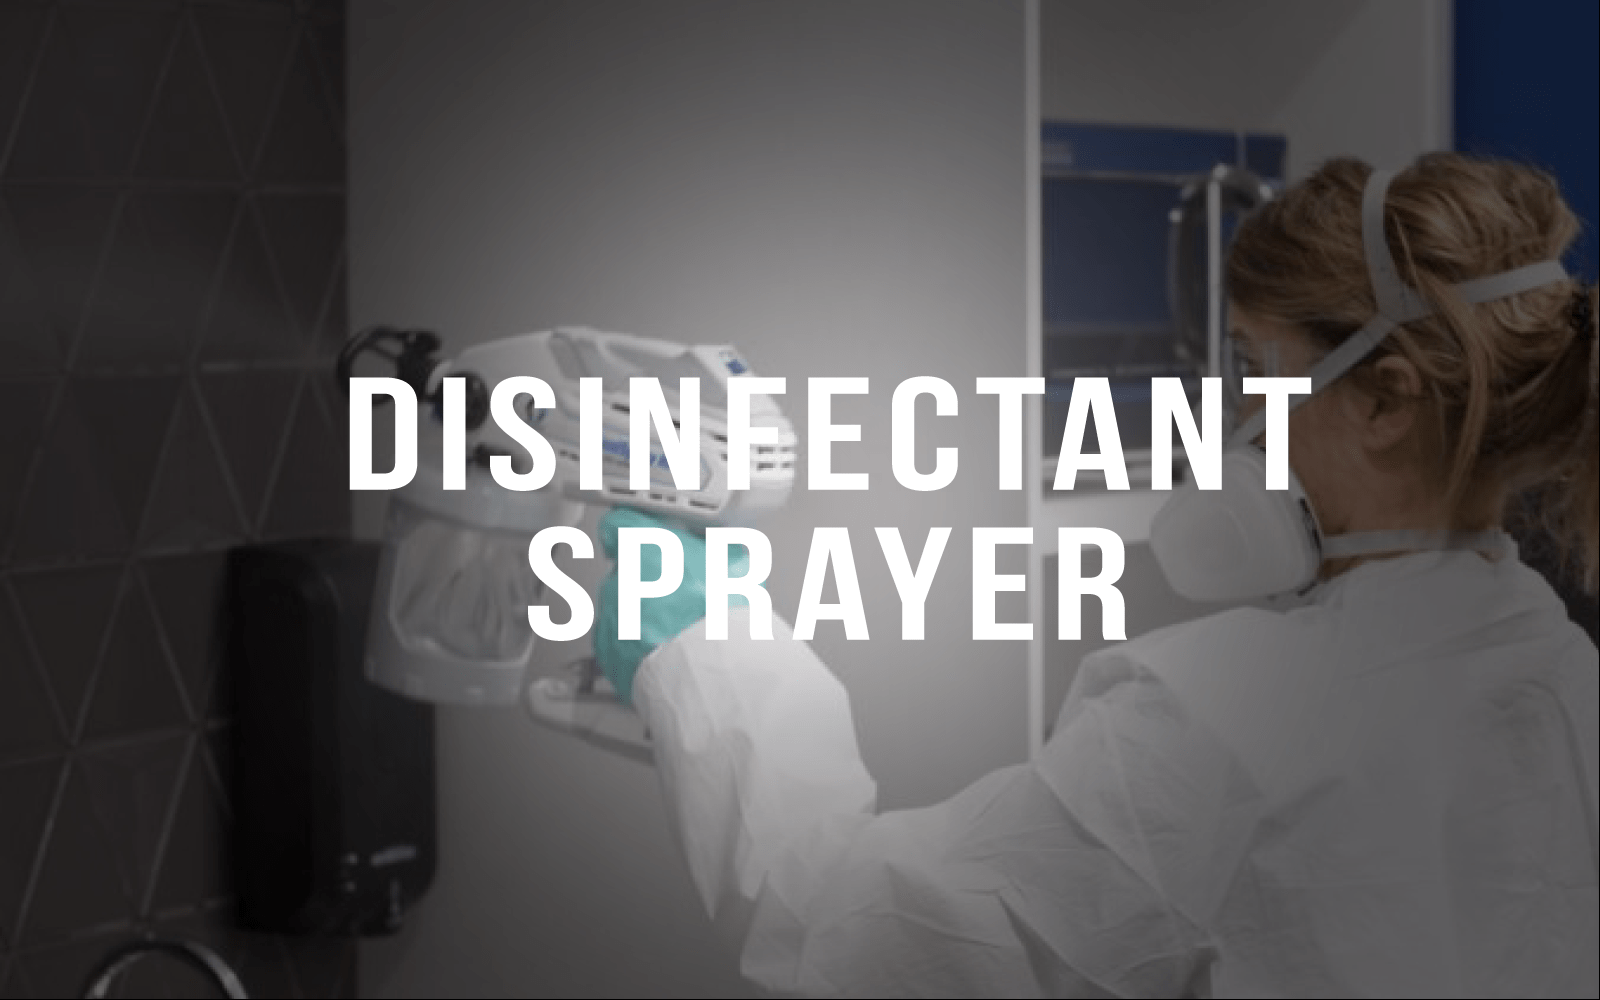 Disinfectant-Sprayer